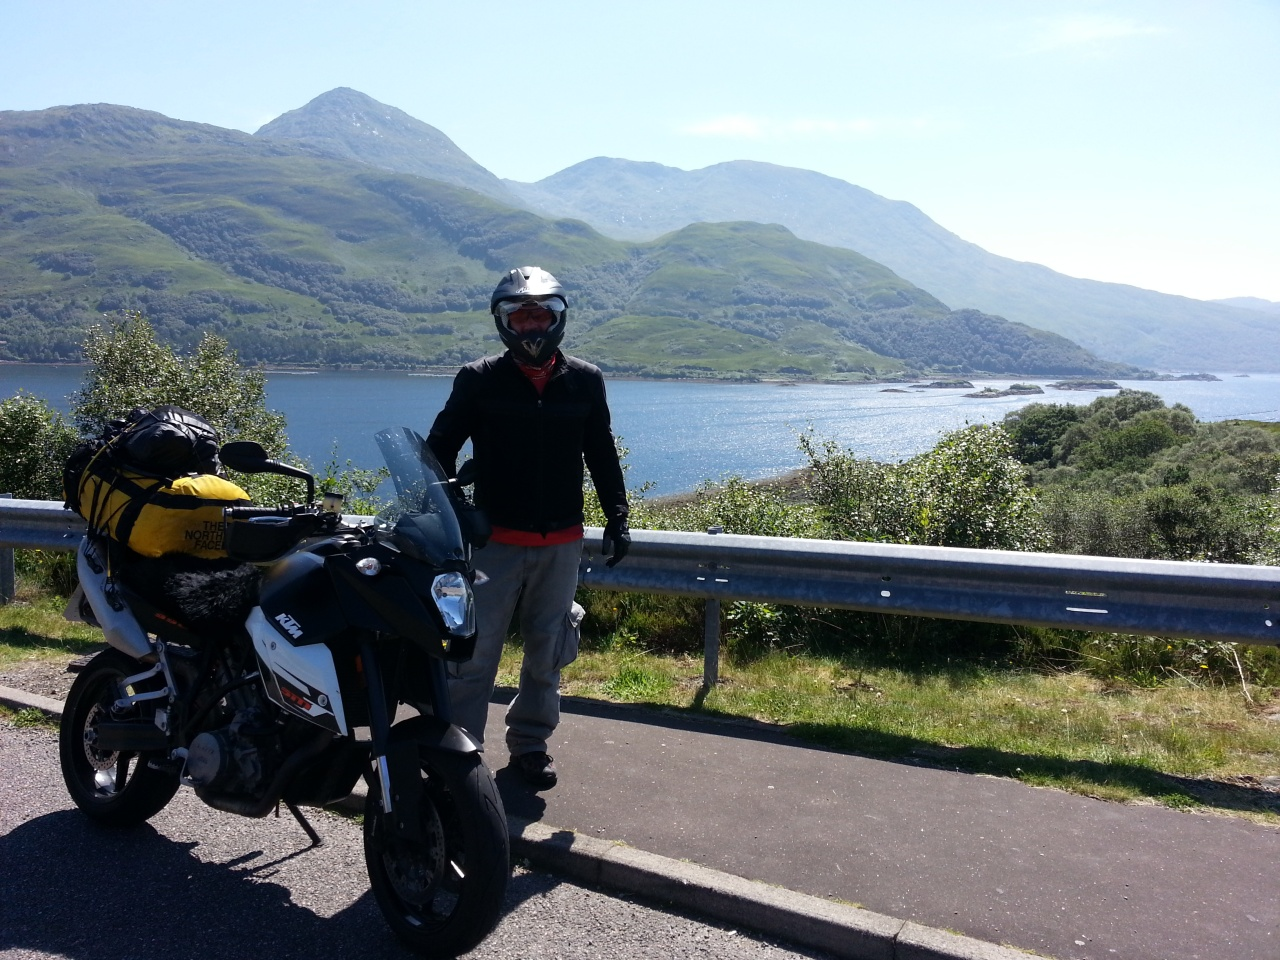 Now we are talking. The ride now moves up to a new quantum level of beautiful. Fanny and I have ridden around the world and been privileged to see the Himalayas, Pyrenees, Alps, Guilin, Rift Valley, Qinghai Cederberg, Atlas etc... but West Scotland on a good day is second to none.